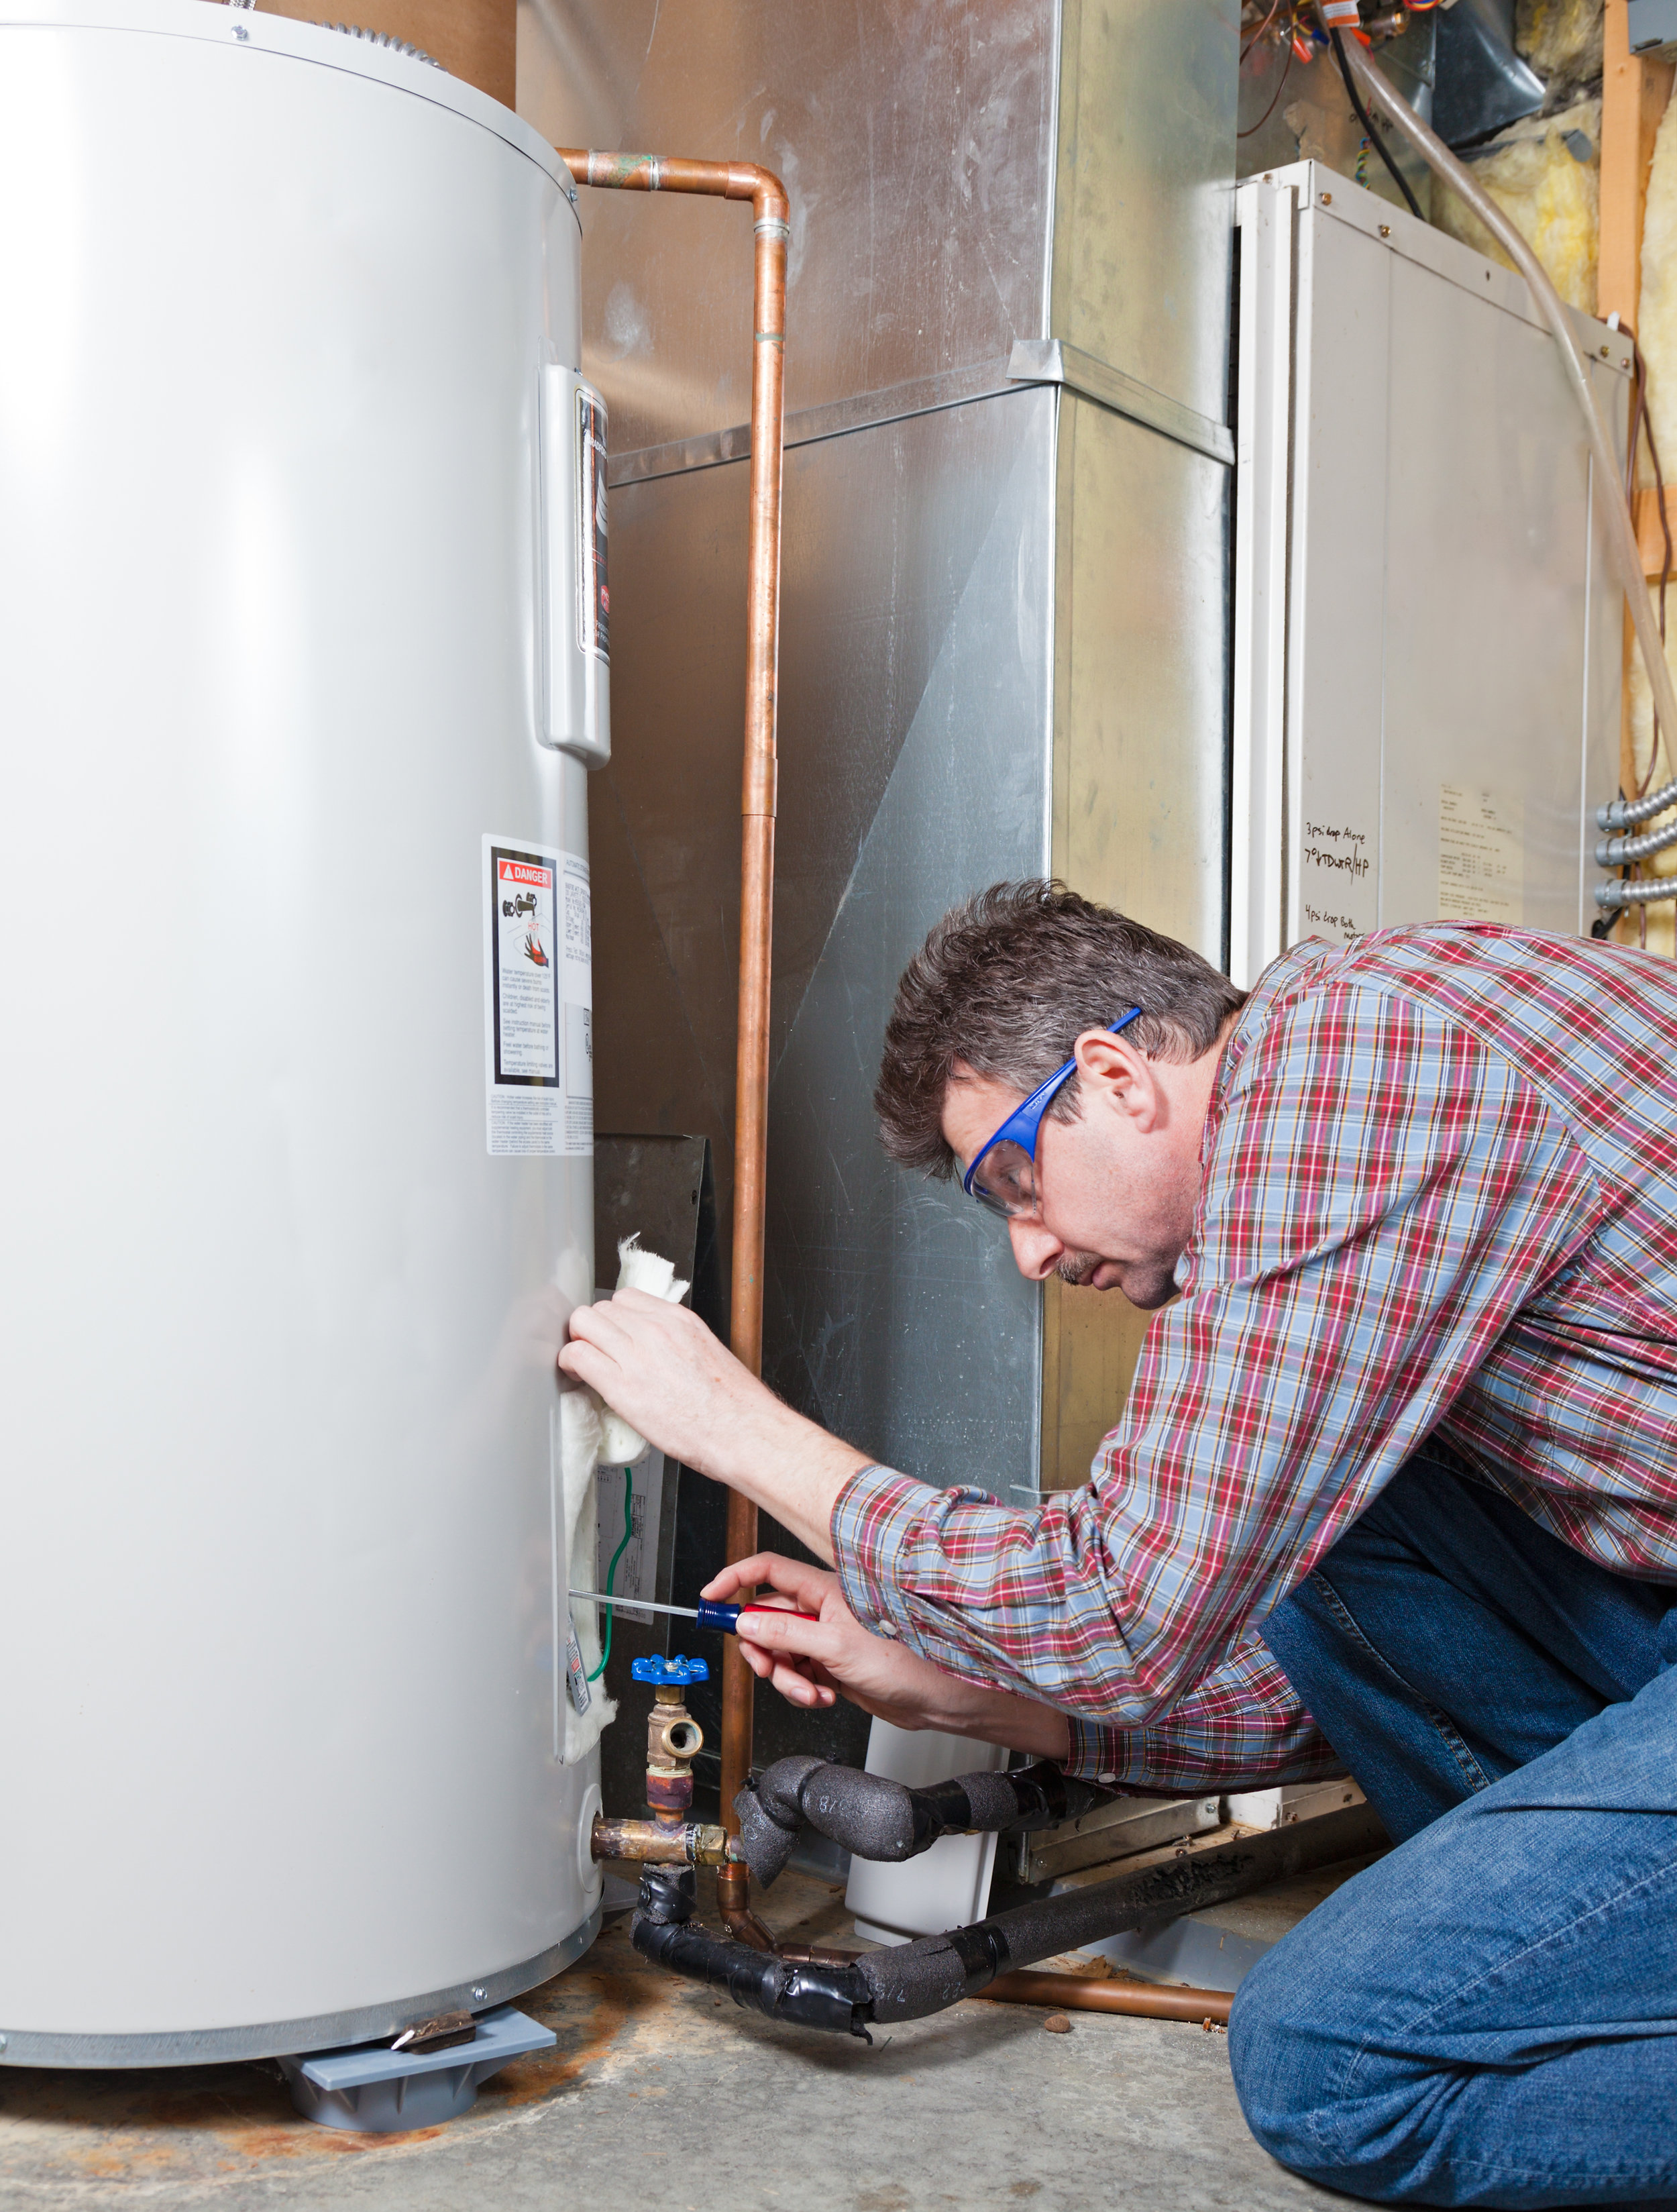 Are you ready for stress-free home maintenance? - We have several maintenance options that will allow you to sit back and relax knowing all of your plumbing needs are taken care of!